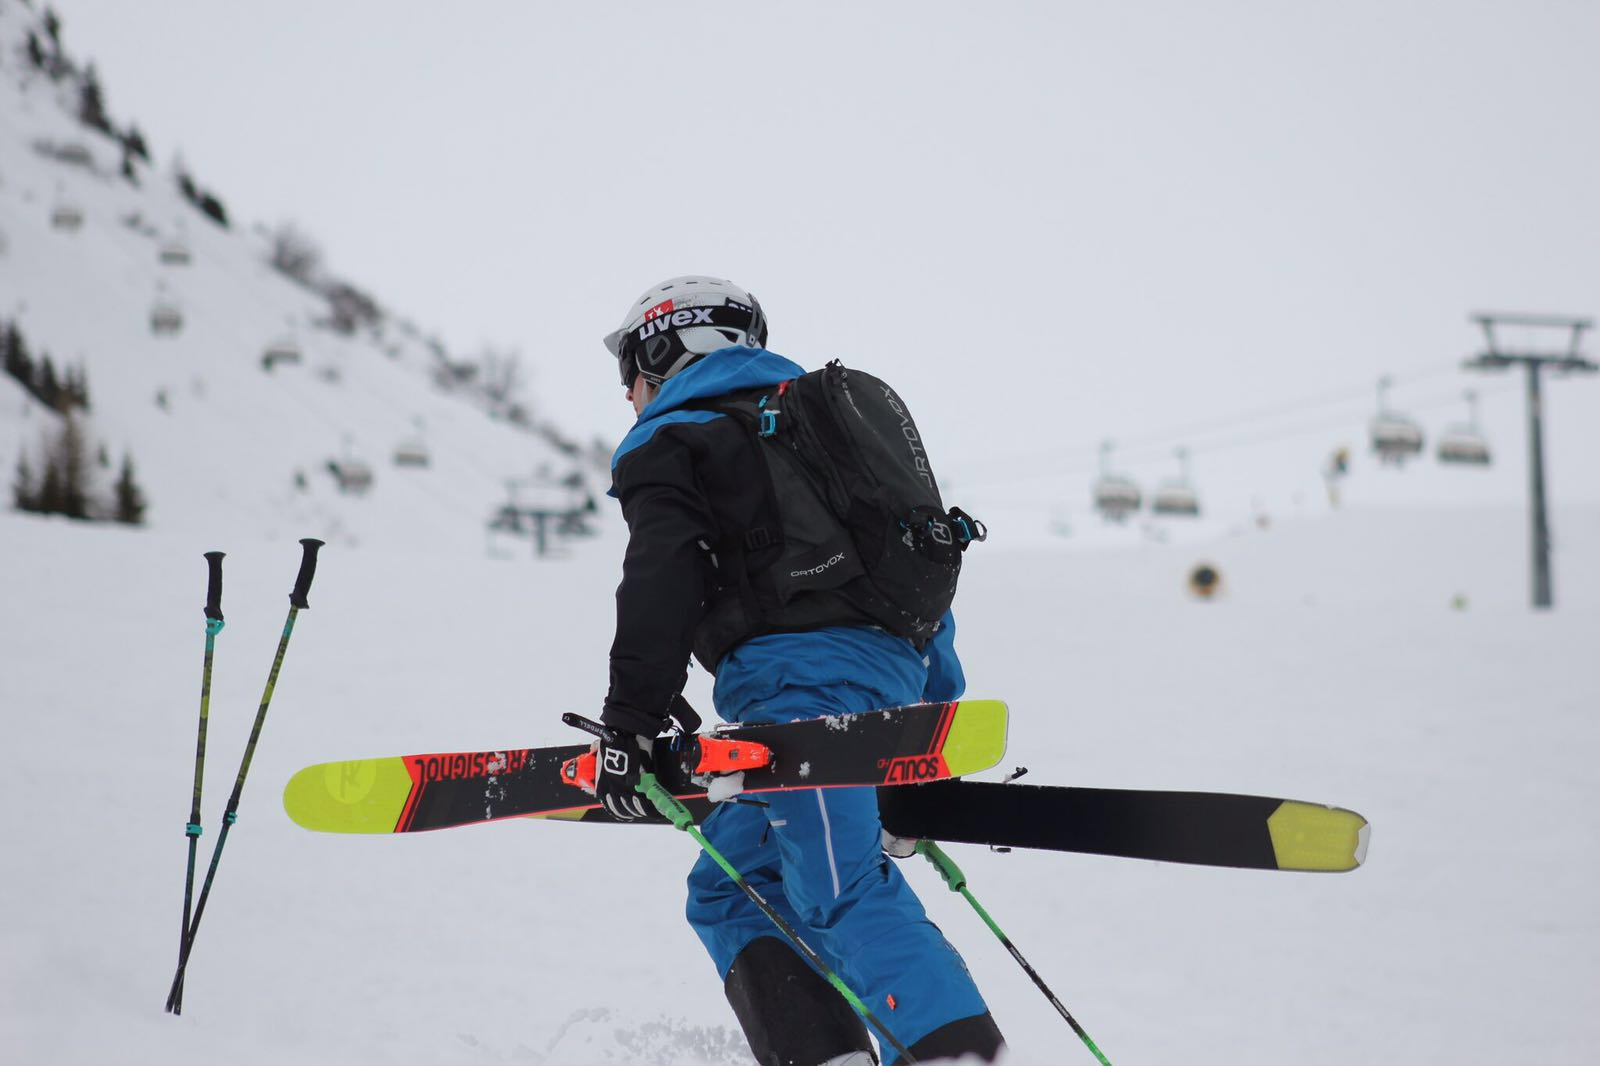 Ski Instruction For Children And Adults In The Mayrhofen Area